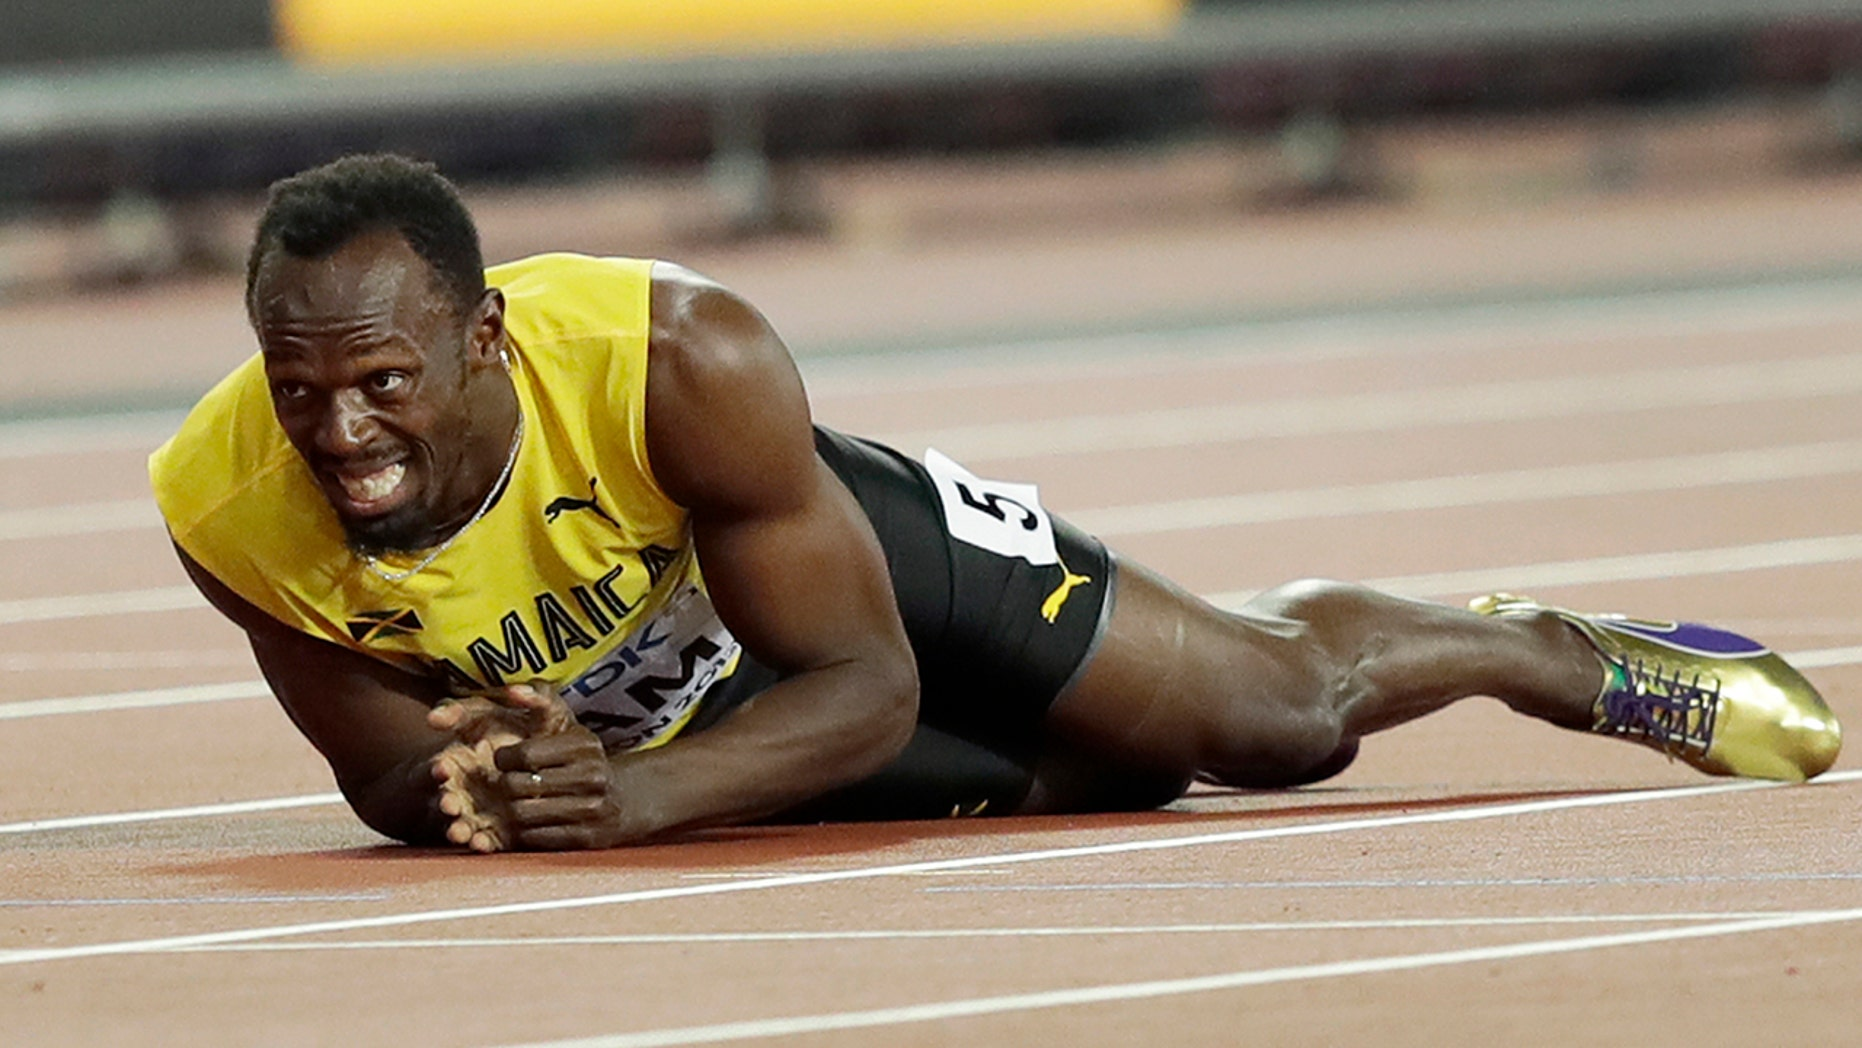 Jamaica's Usain Bolt lies on the track after he injured himself during the 4x100 m relay final during the World Athletics Championships in London Saturday.